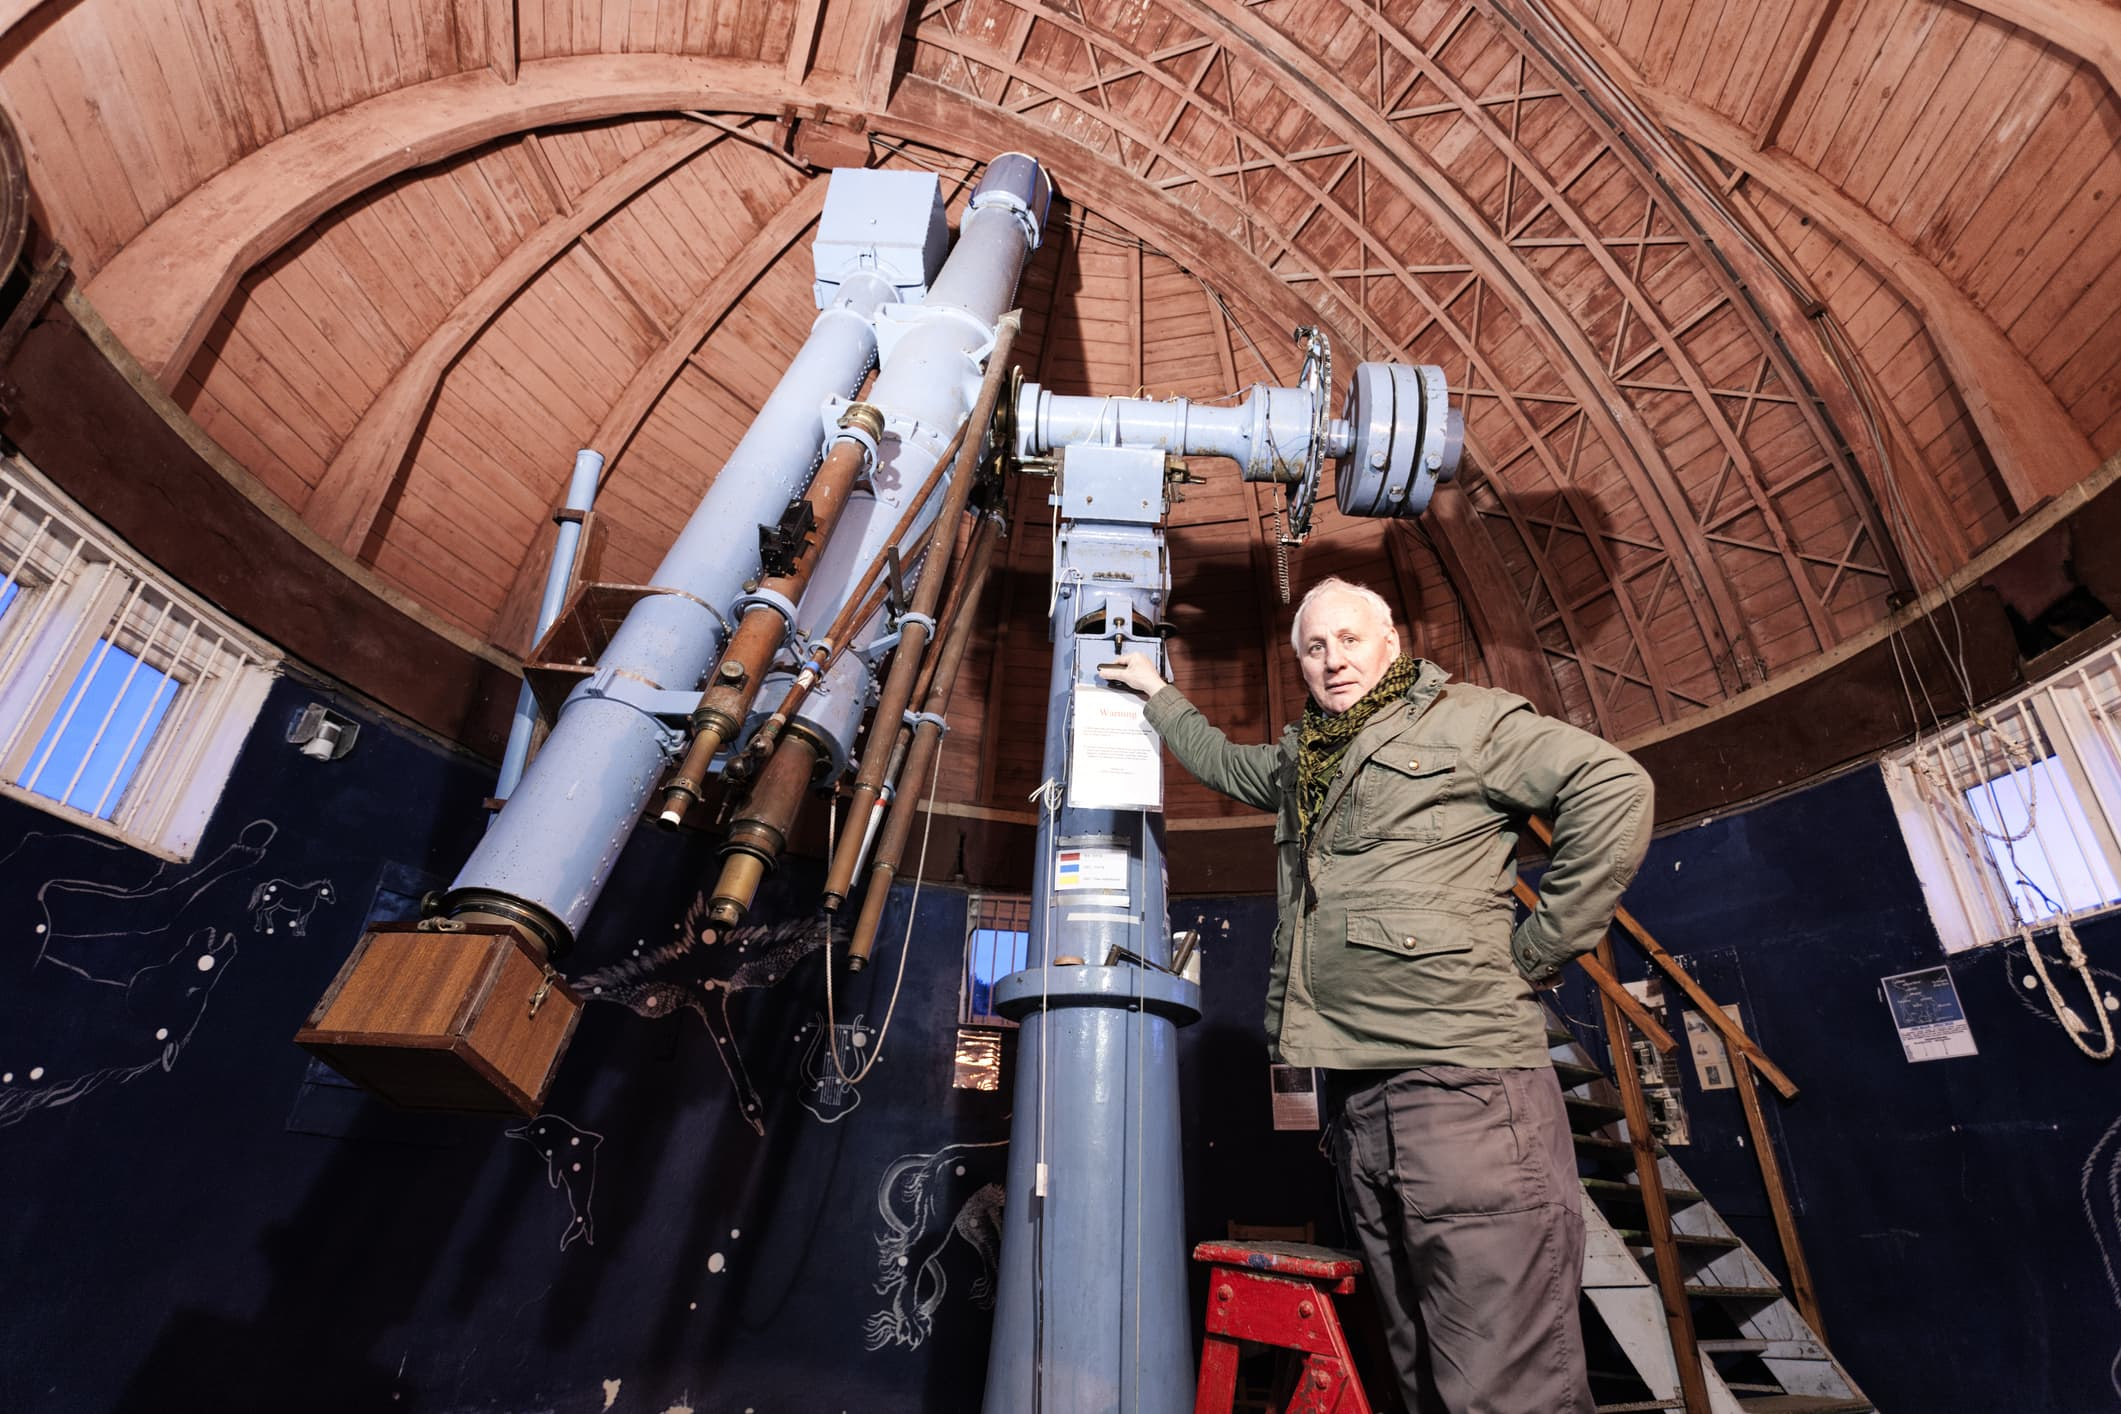 GP: Astronomer within an observatory